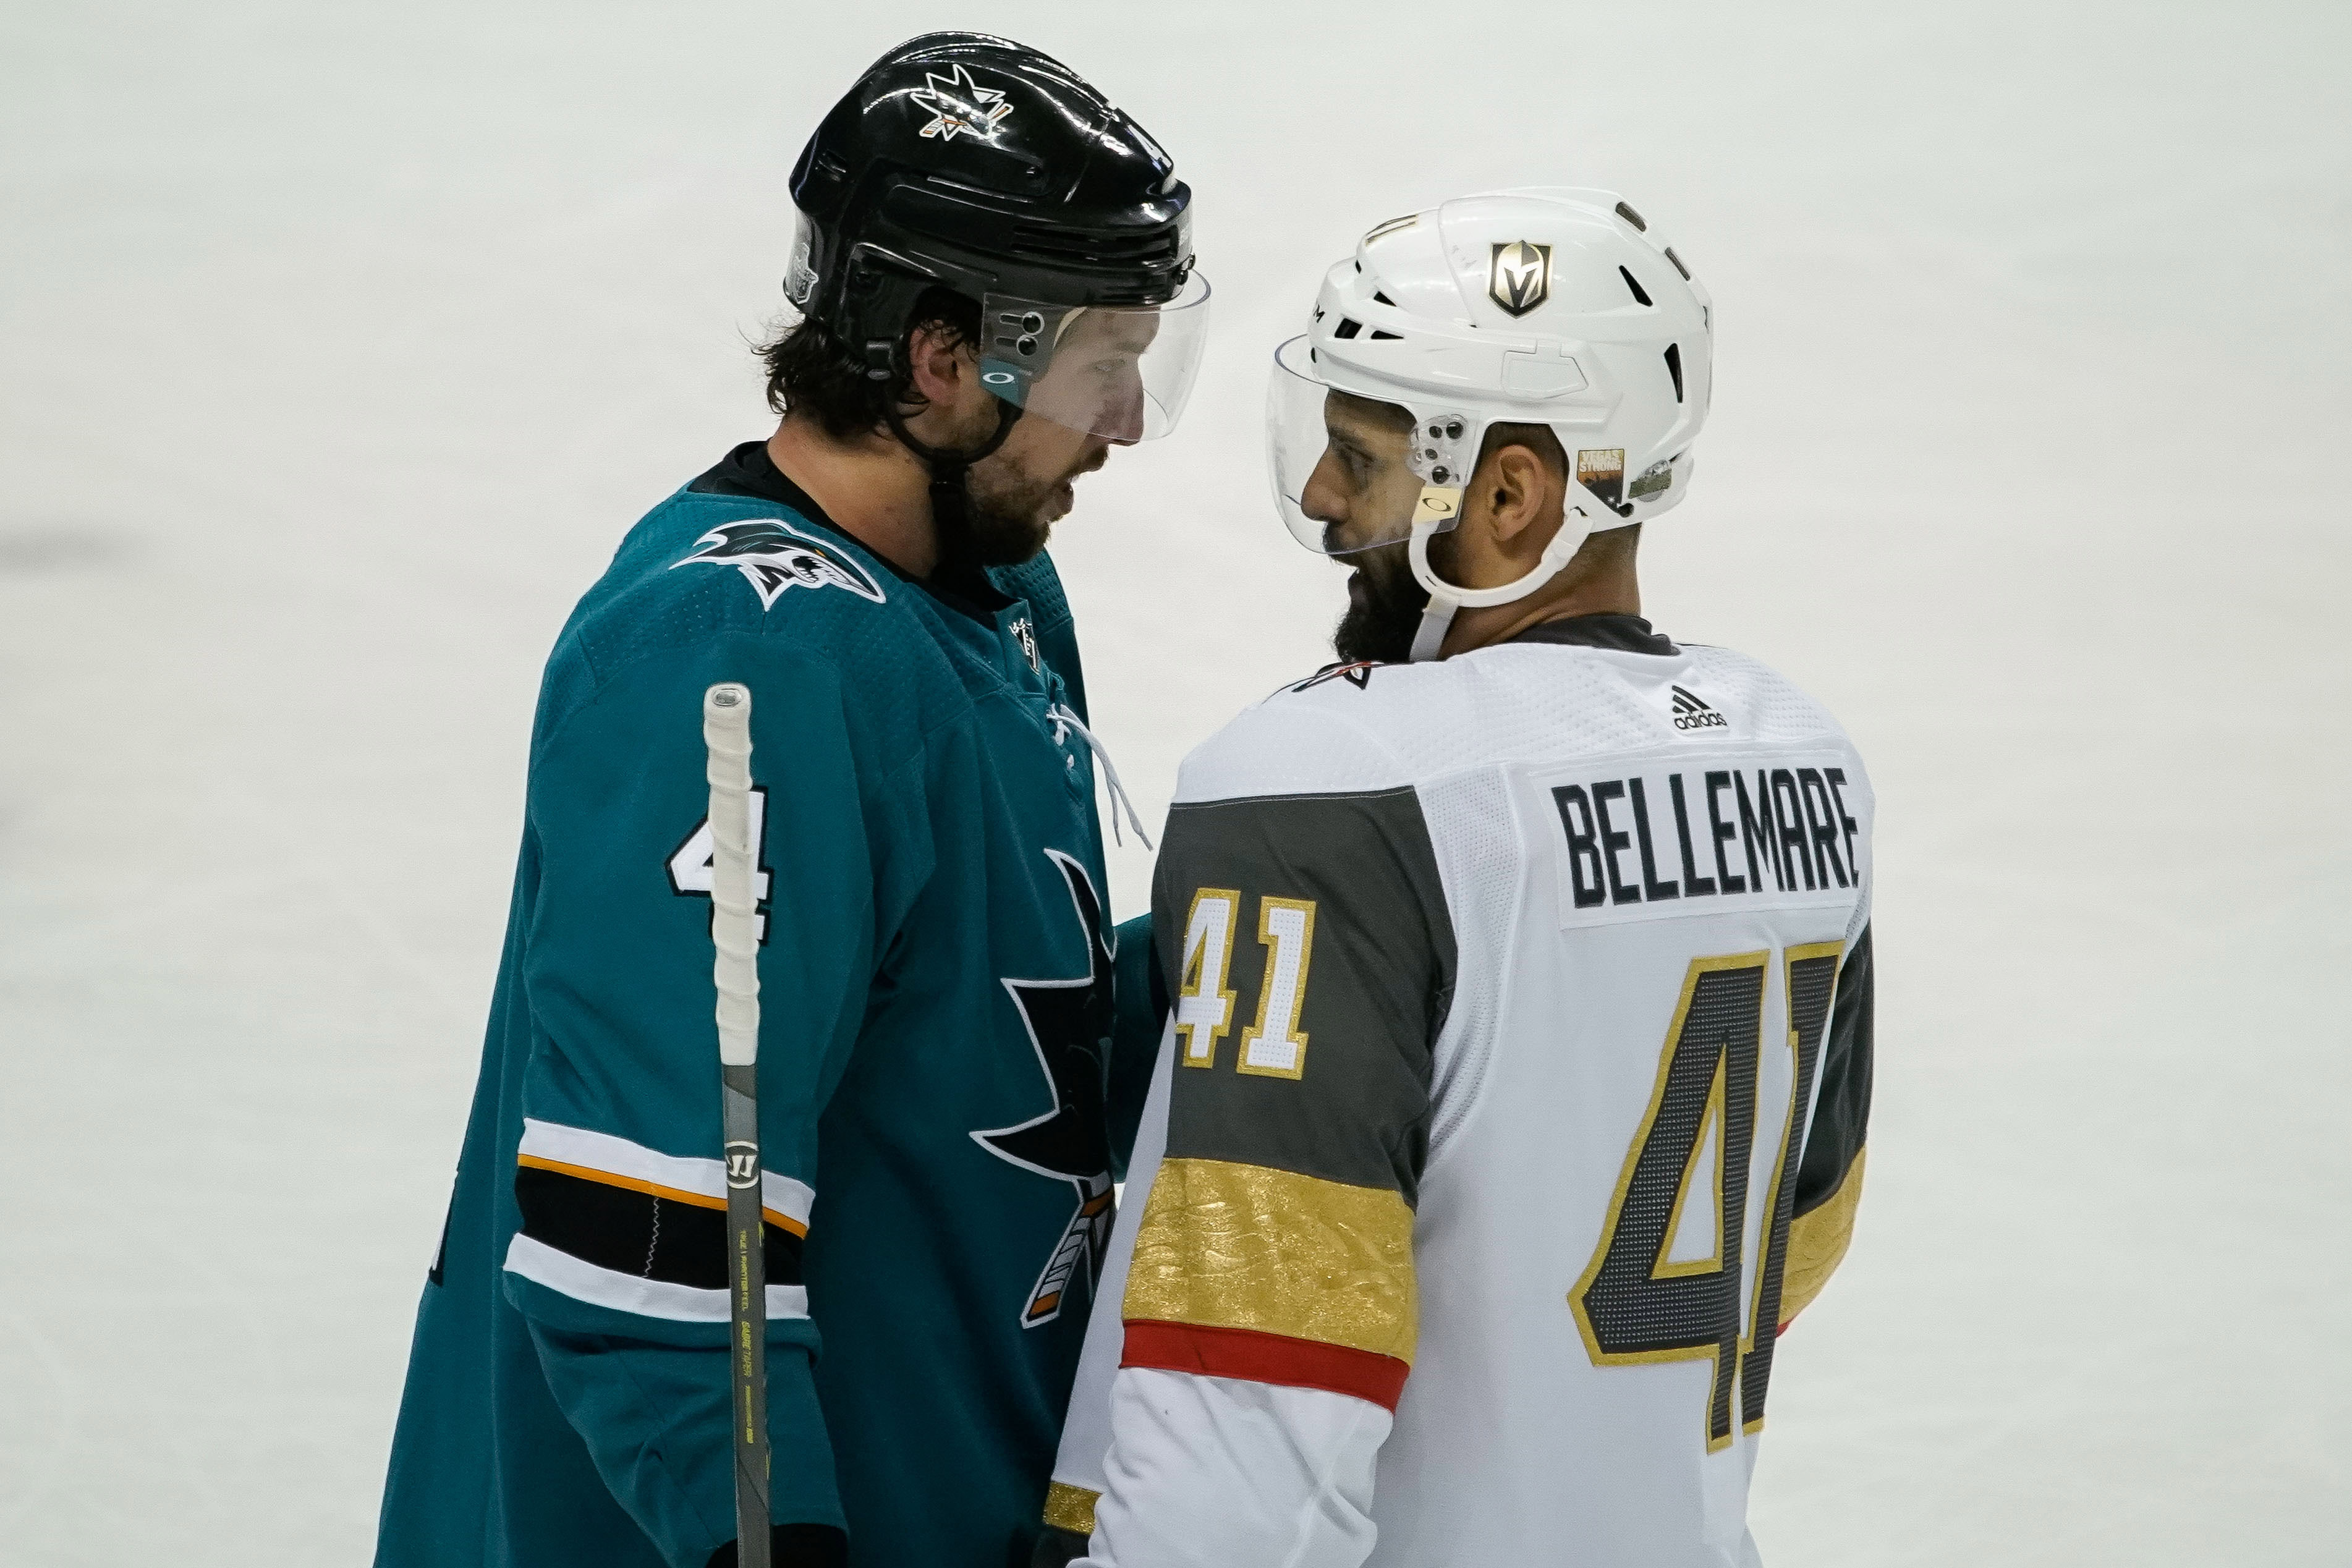 May 2, 2018; San Jose, CA, USA; San Jose Sharks defenseman Brenden Dillon (4) and Vegas Golden Knights left wing Pierre-Edouard Bellemare (41) confront each other during the third period in game four of the third round of the 2018 Stanley Cup Playoffs at